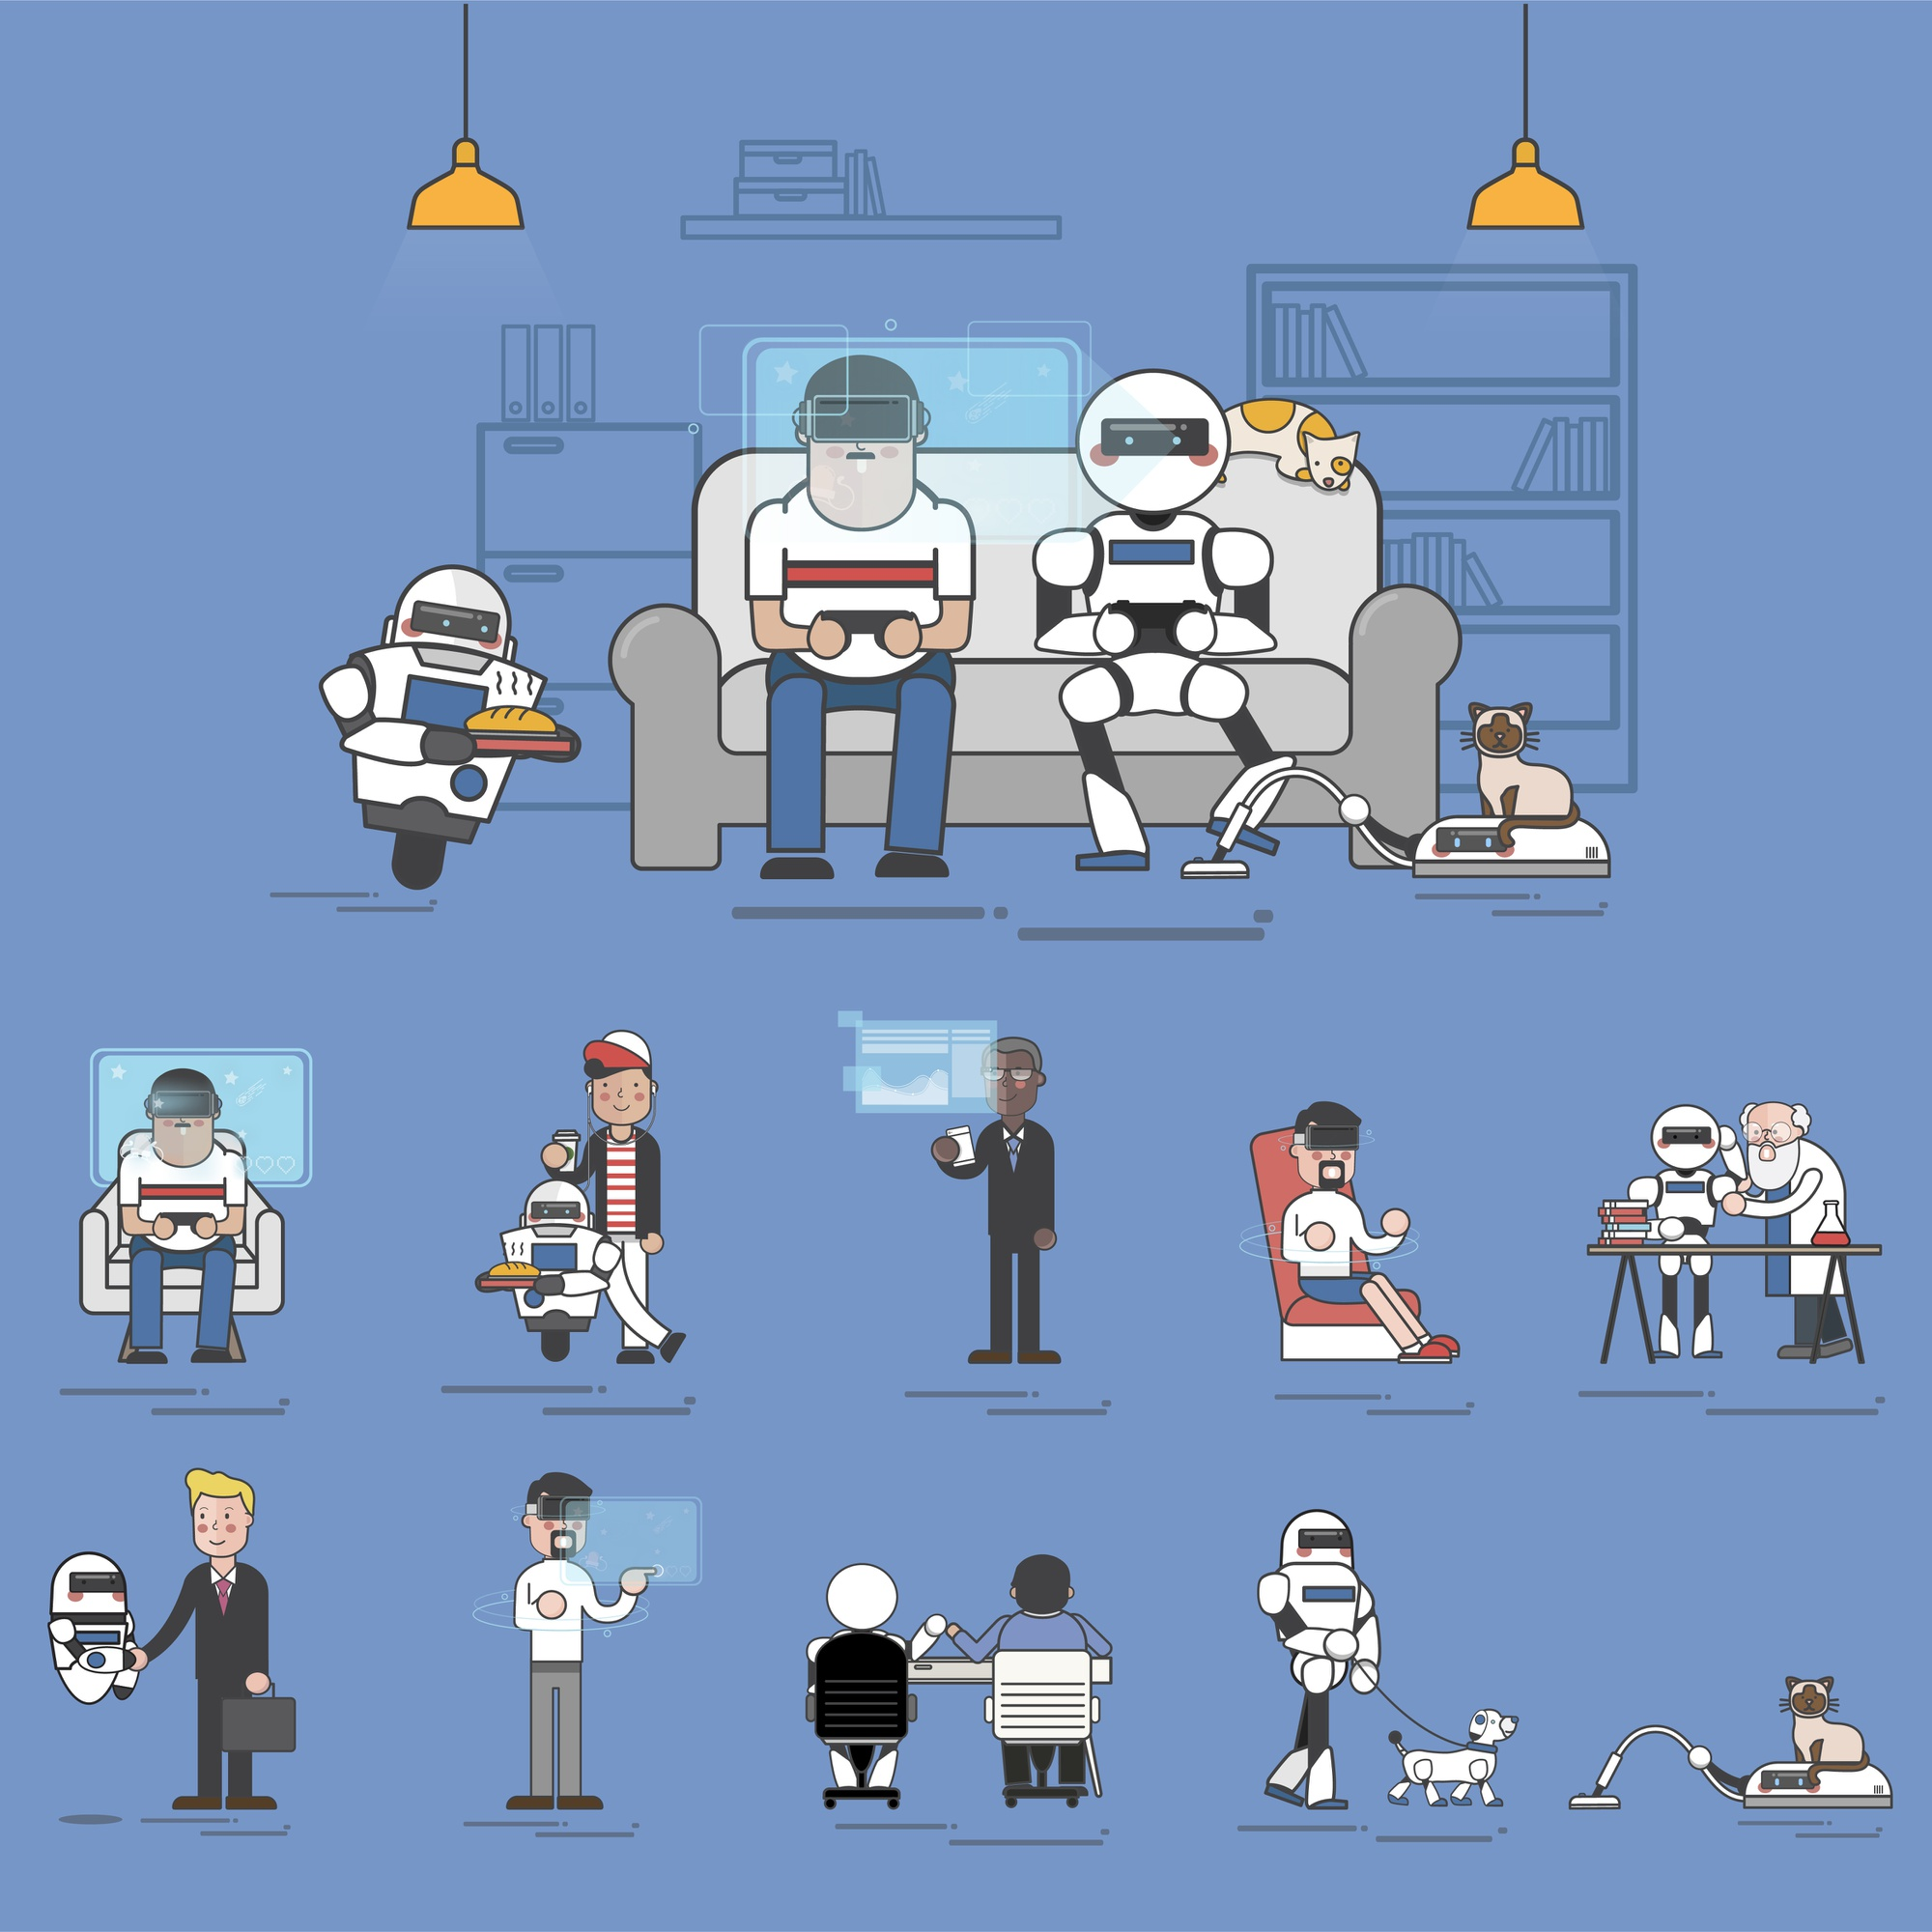 Compilation of advanced AI technology in everyday life illustration